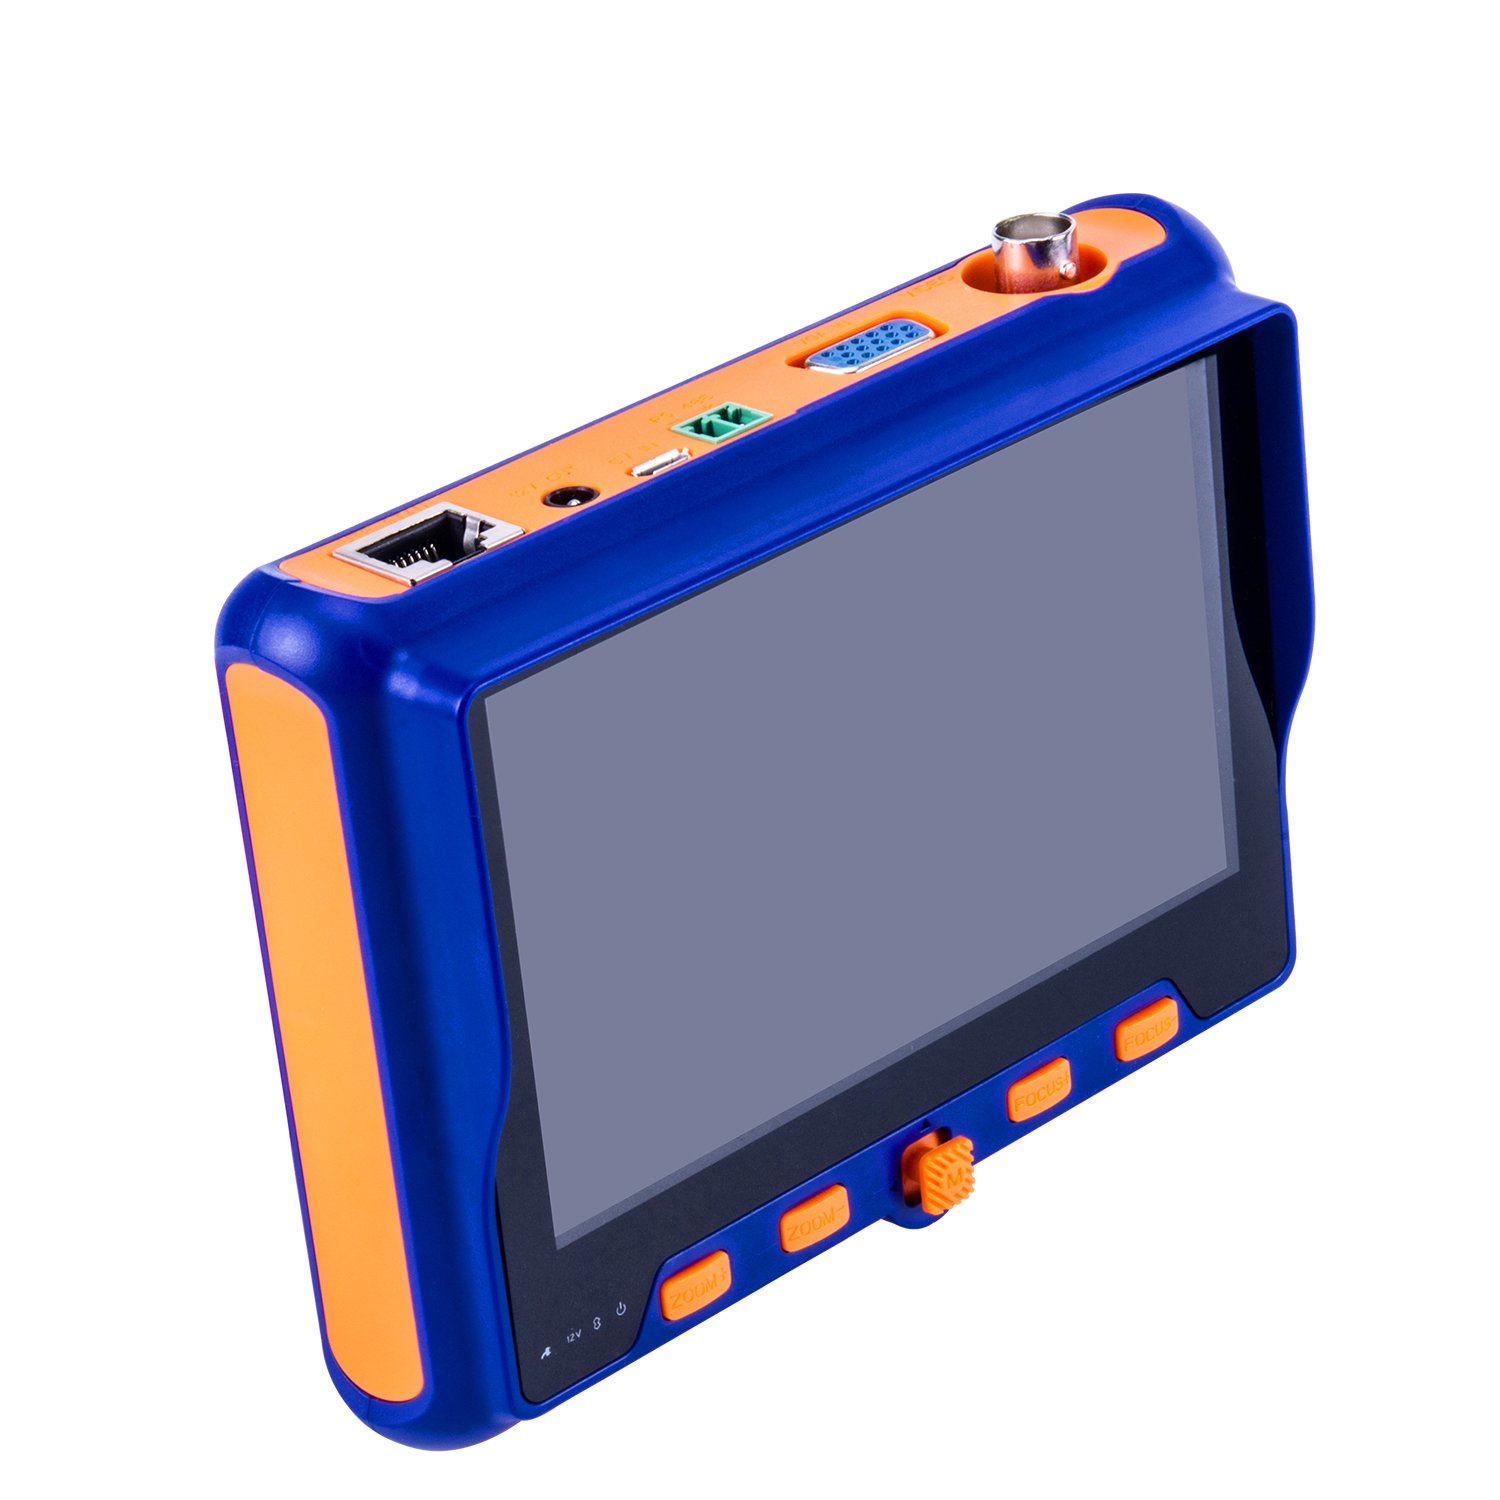 5'' Wrist TFT LCD CCTV Tester 1080P 4 IN 1 AHD TVI CVI CVBS Tester Analog Video Test PTZ Control 12V Power Output Cable Test and security Camera Tester Multi-function CCTV tester OM-5800